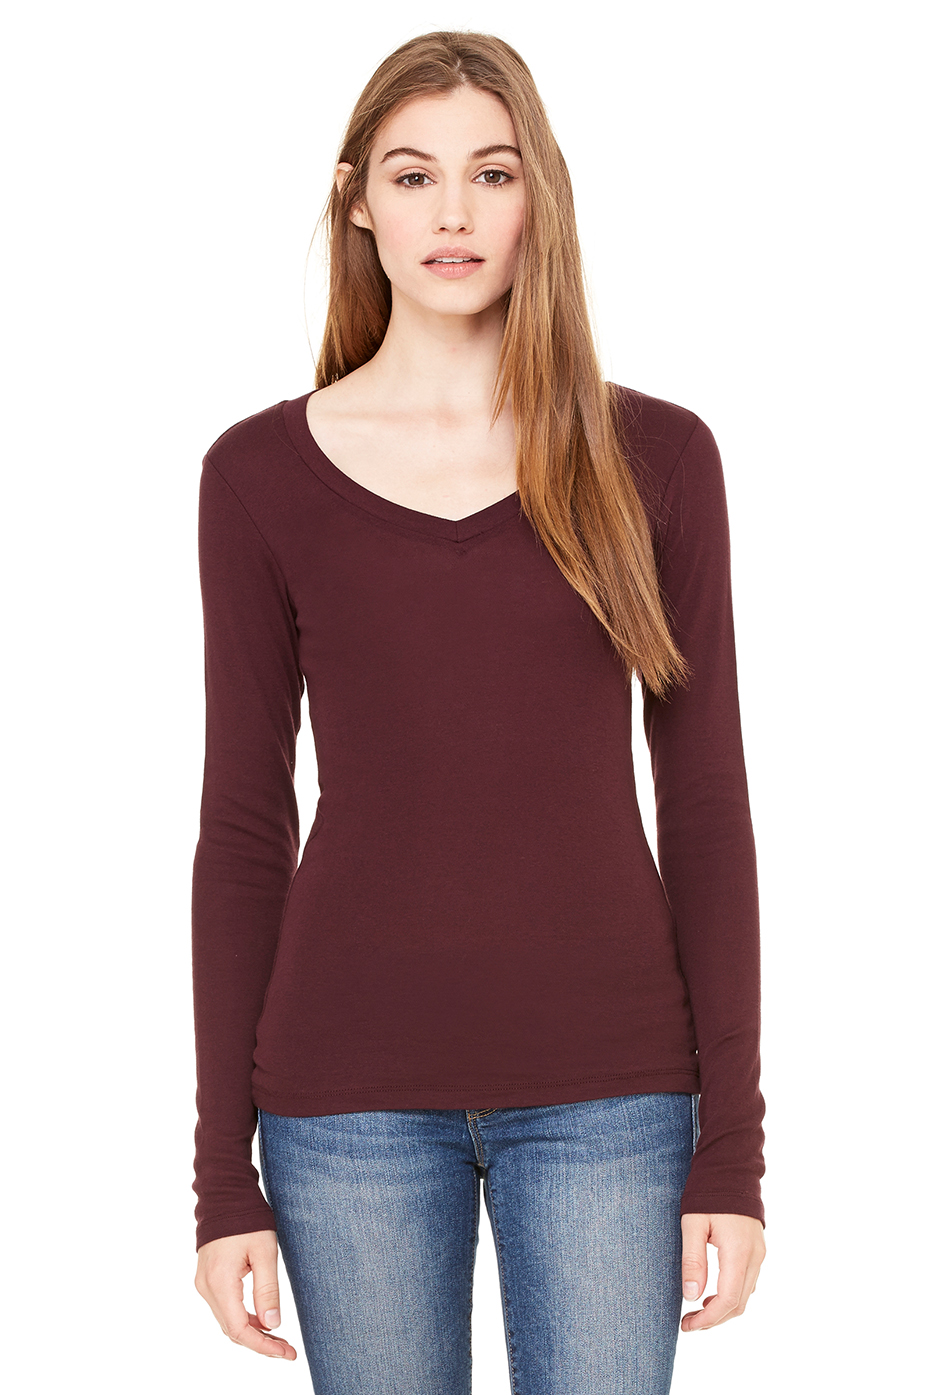 Women's Sheer Mini Rib Long Sleeve V-Neck Tee